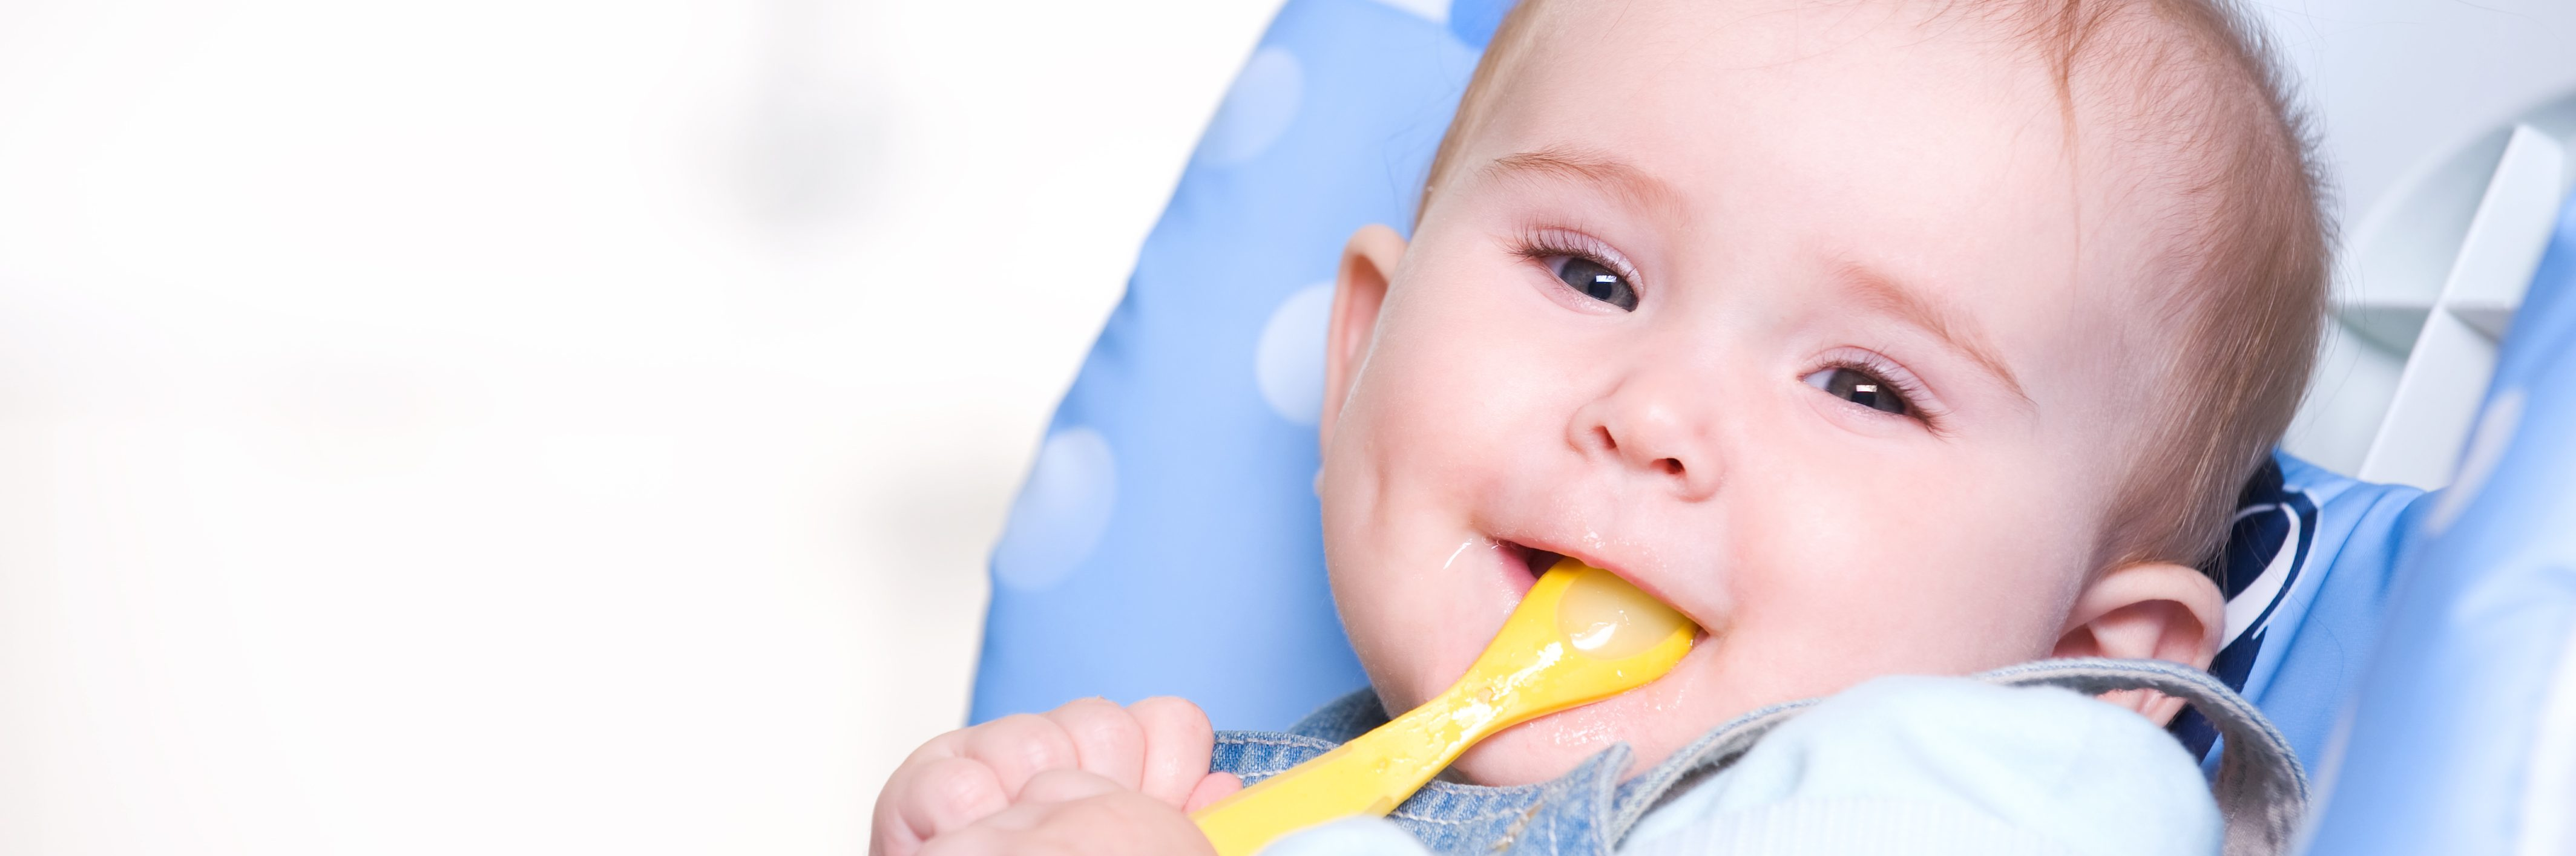 Baby With Spoon In Mouth